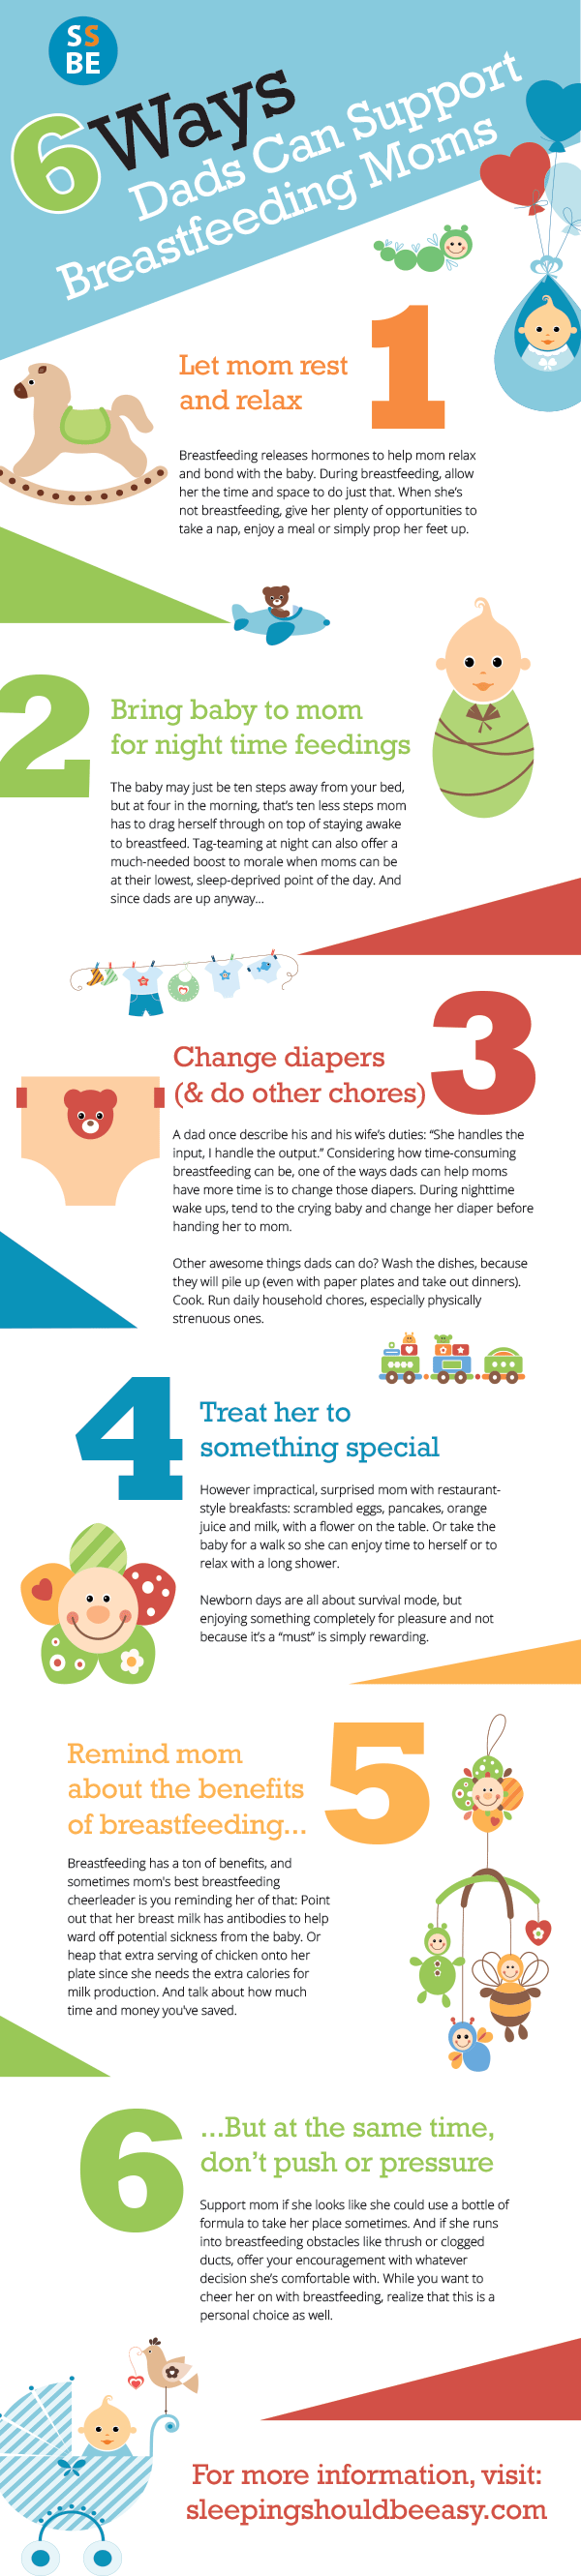 How can dads help with breastfeeding? Start with these 6 ways dads can support breastfeeding moms and encourage her to breastfeed the baby.